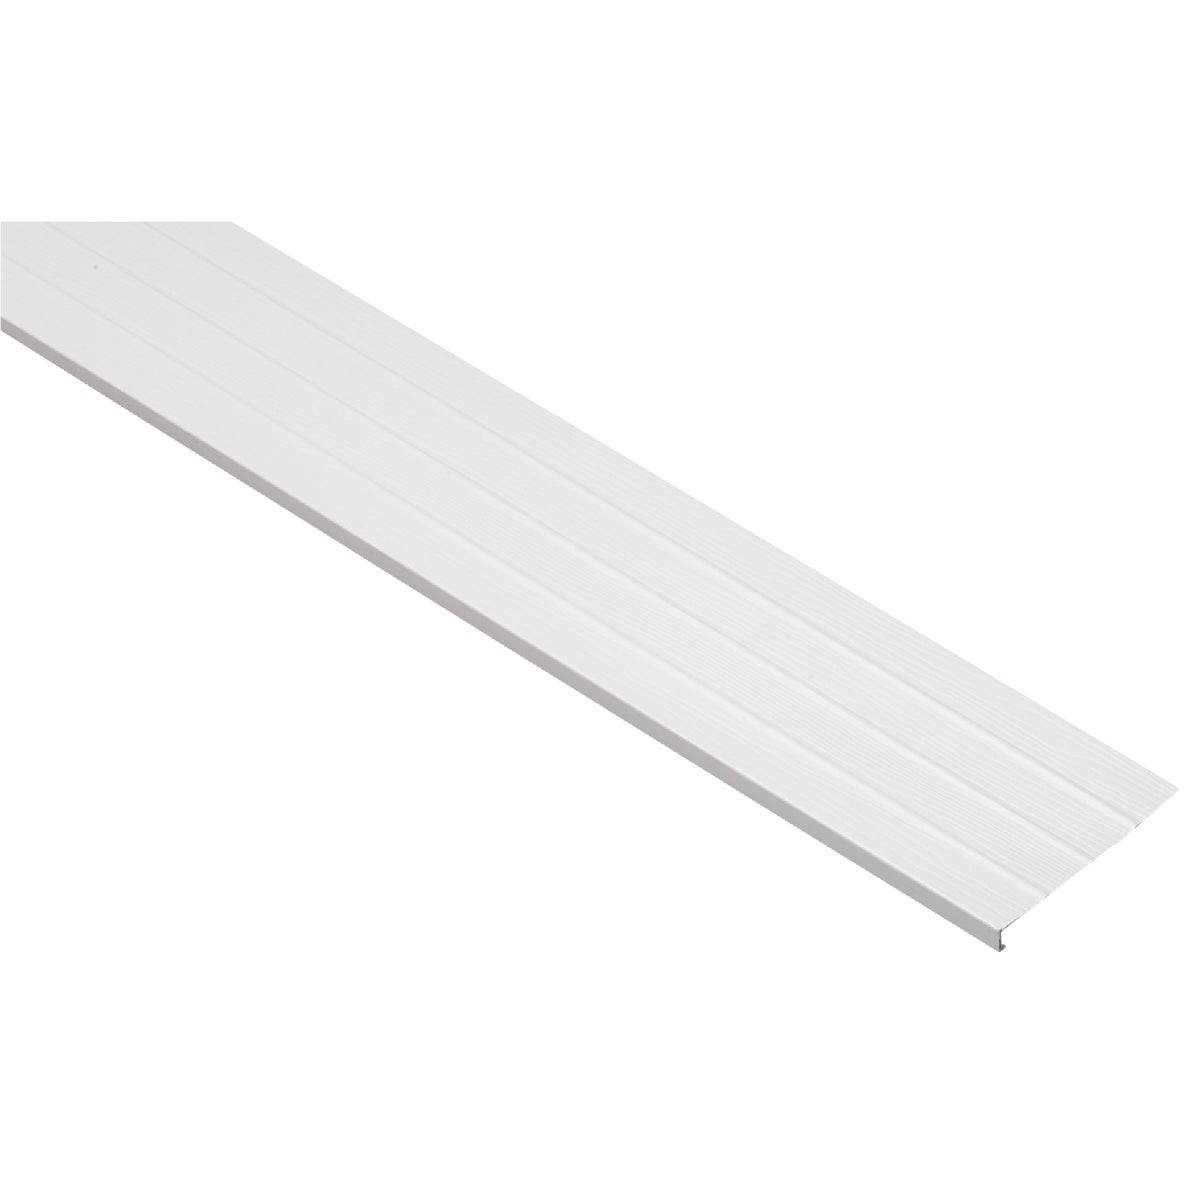 "8"" WHITE FASCIA - 330709 by Bluelinx"